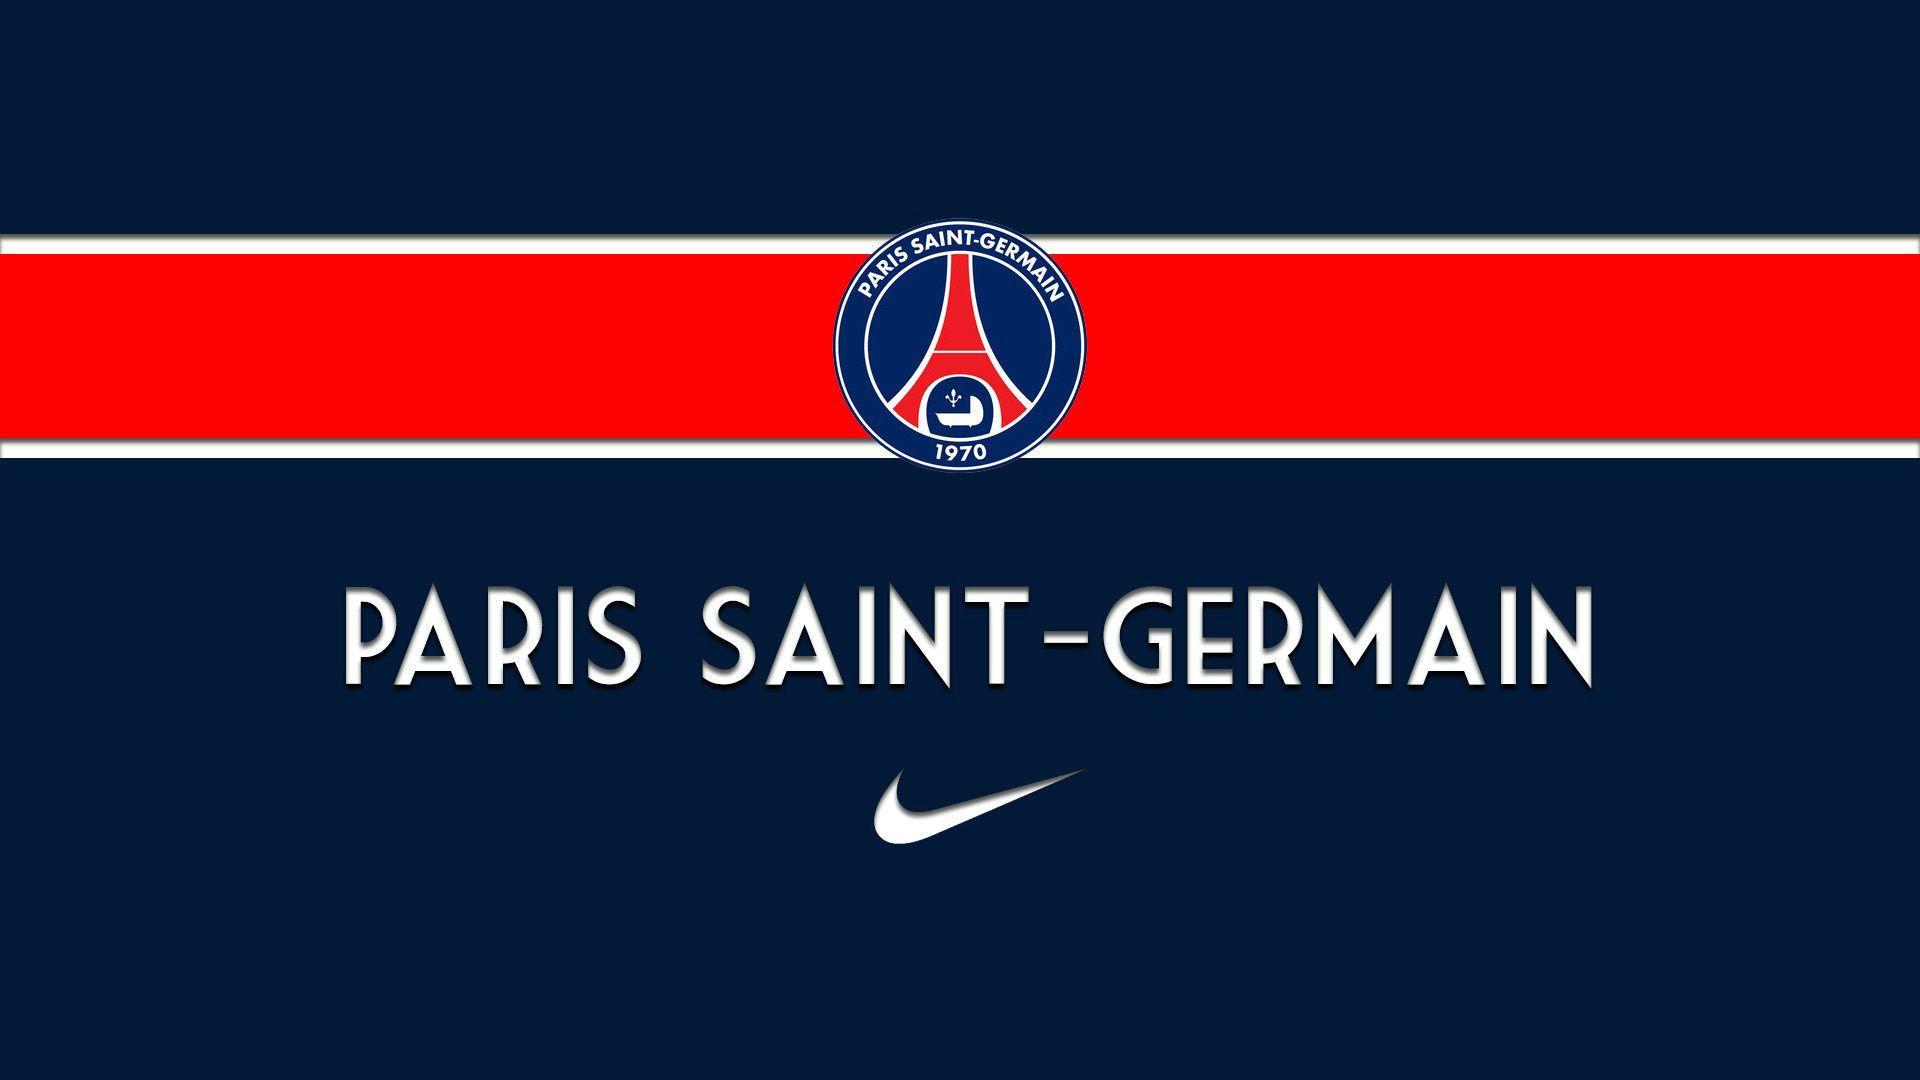 Fonds d'écran Paris Saint Germain Logo | Paris saint